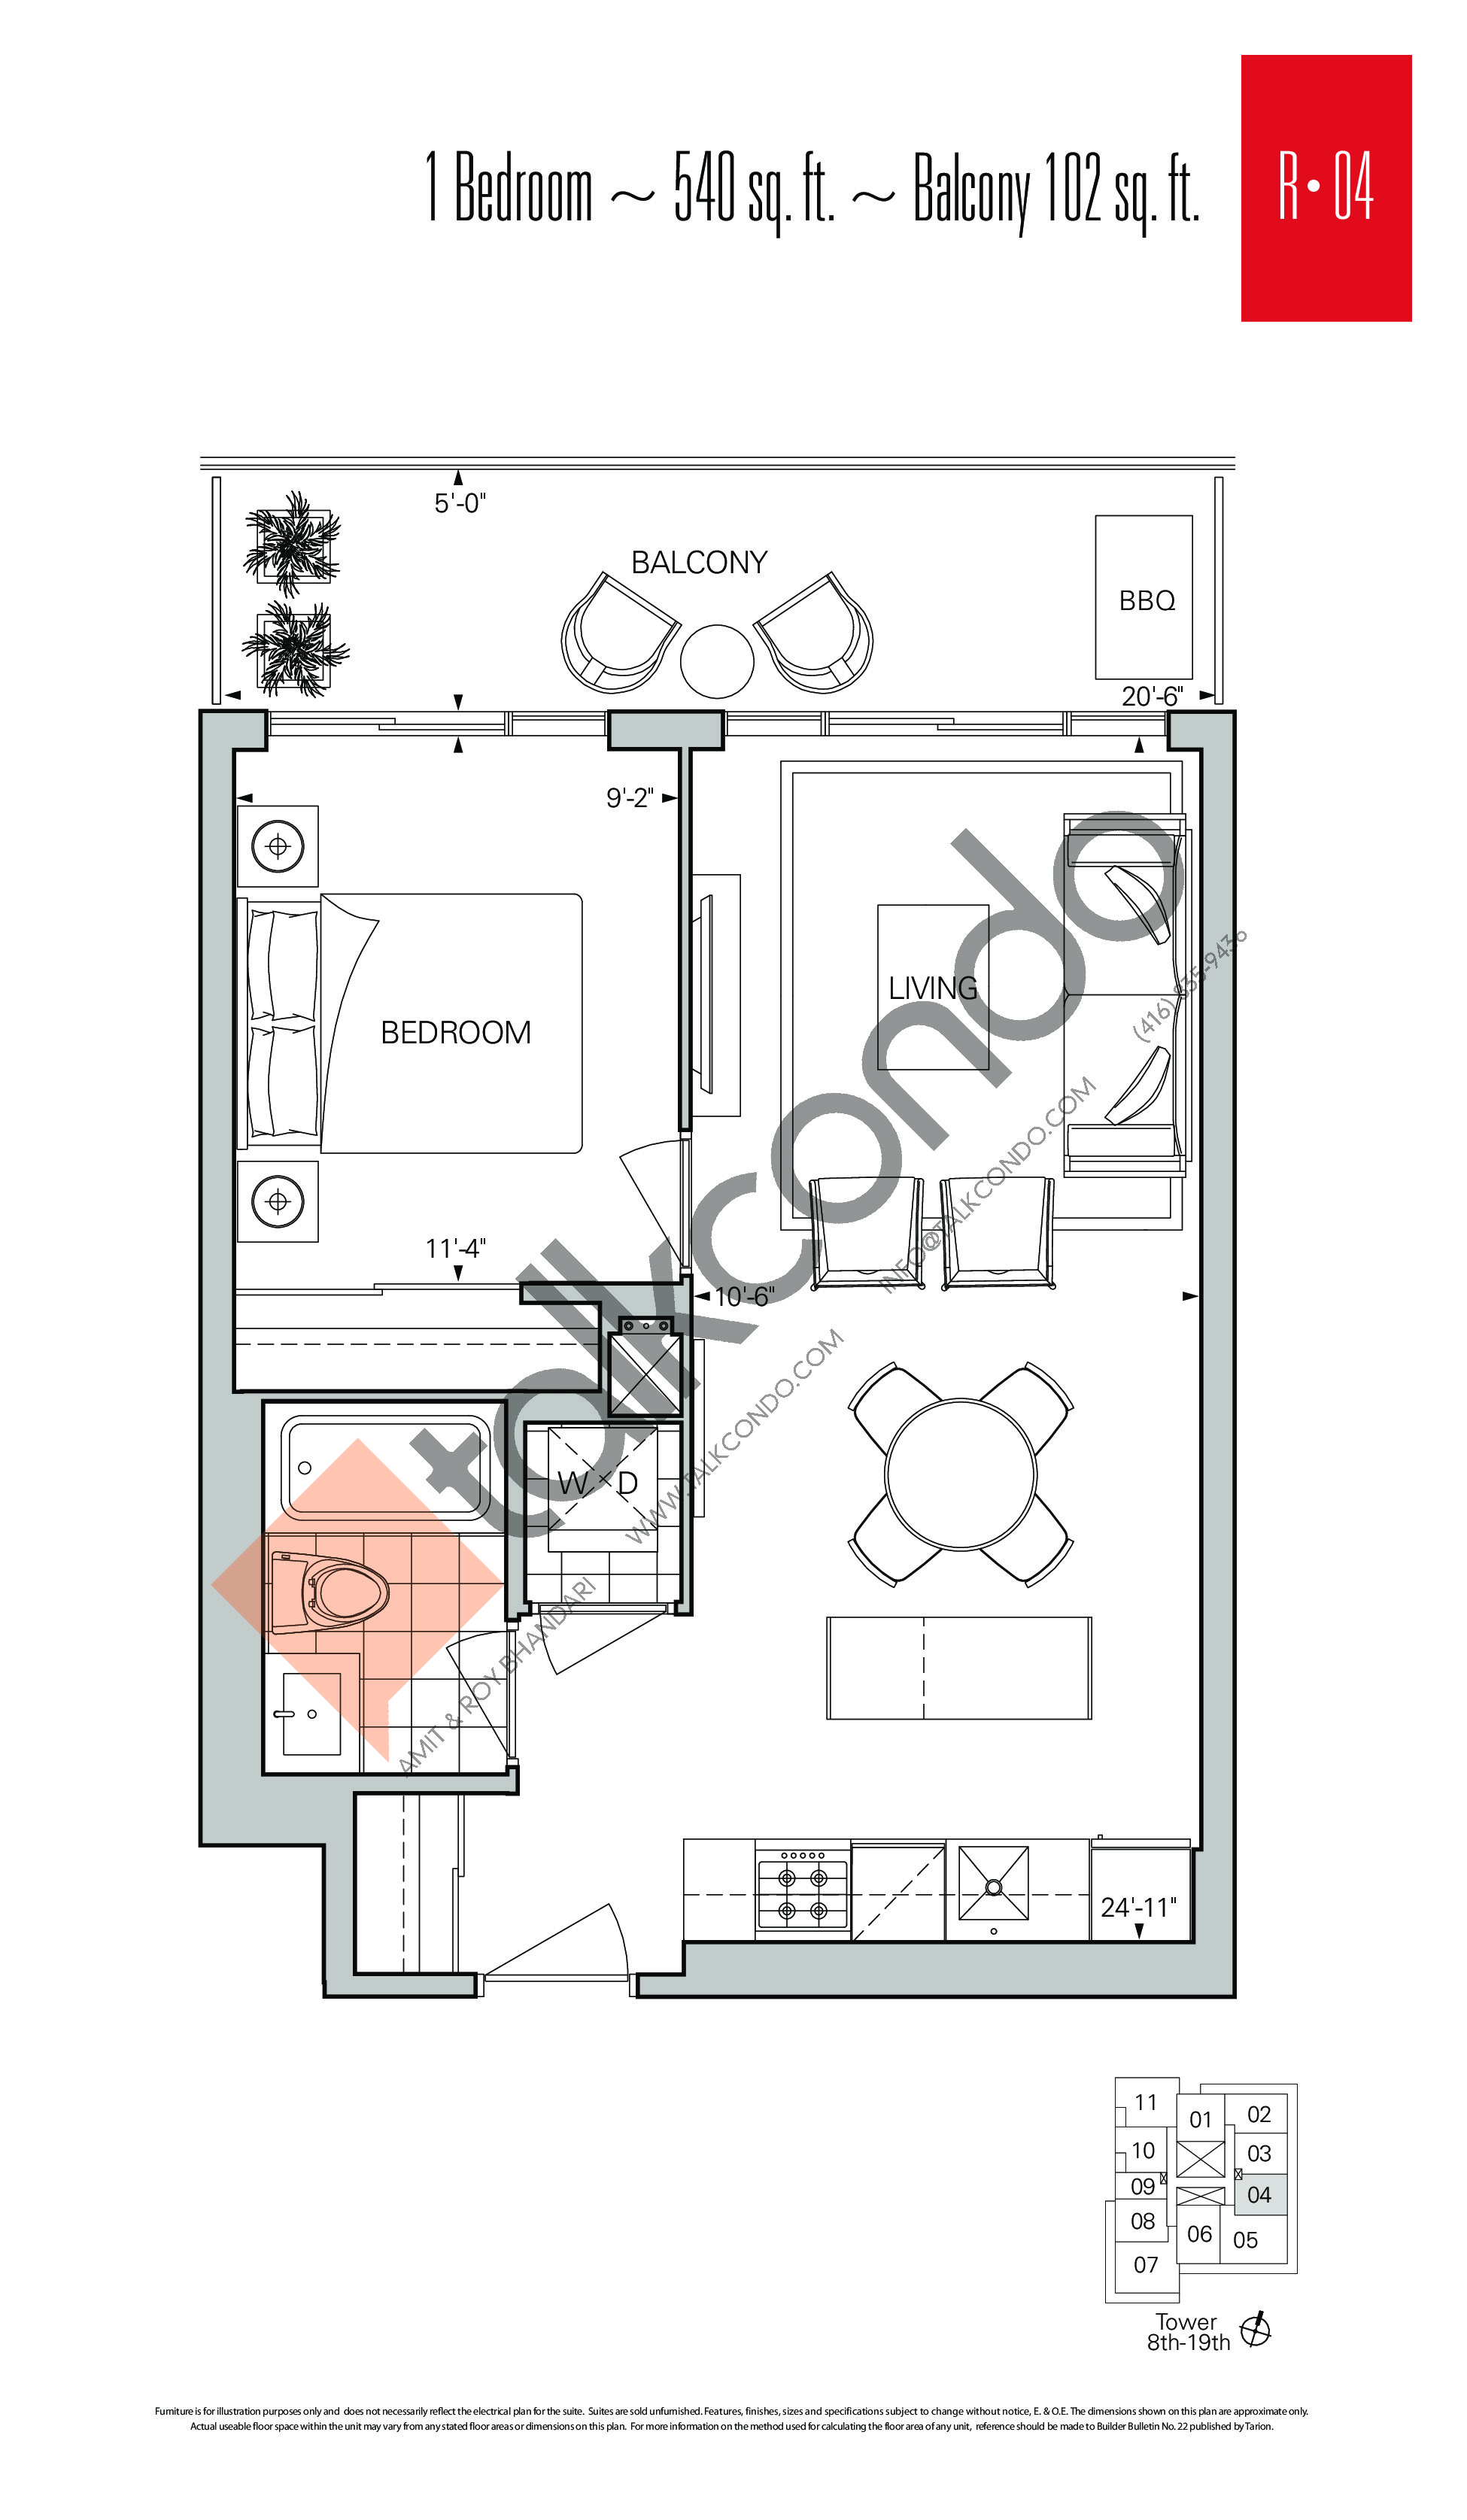 R-04 Floor Plan at Rise Condos - 540 sq.ft